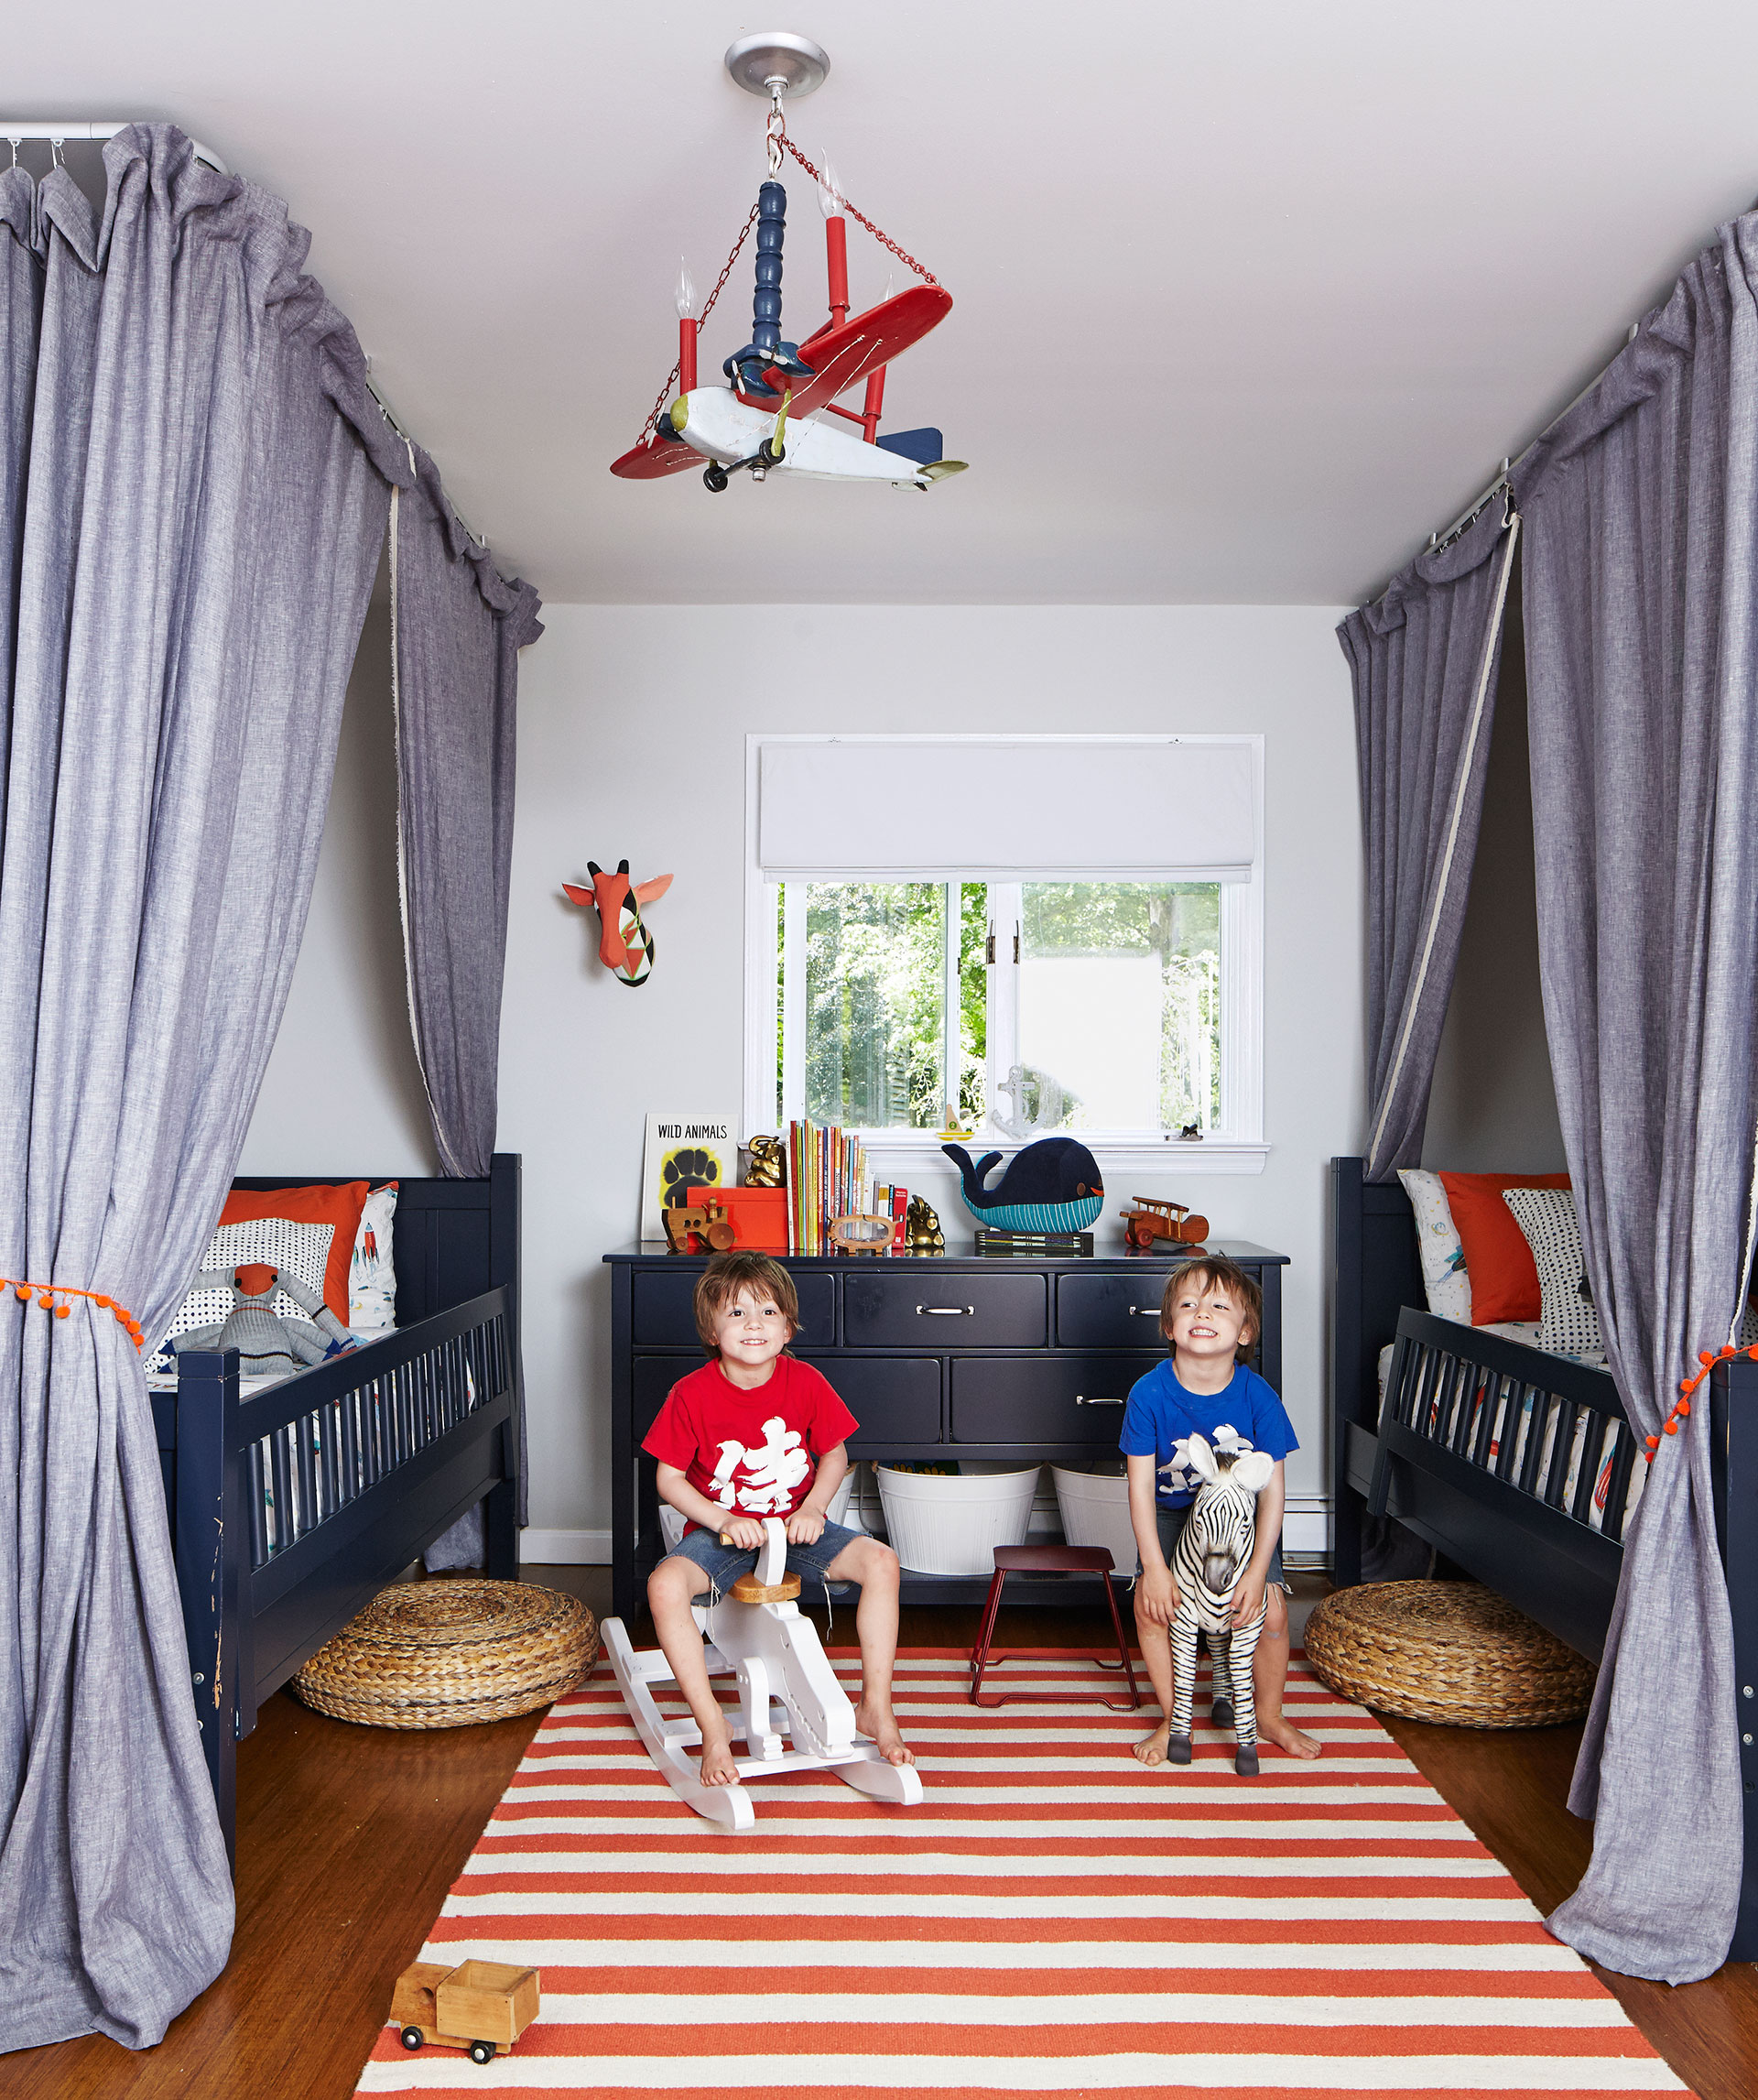 Kids Room Idea 50 Kids Room Decor Ideas  Bedroom Design And Decorating For Kids